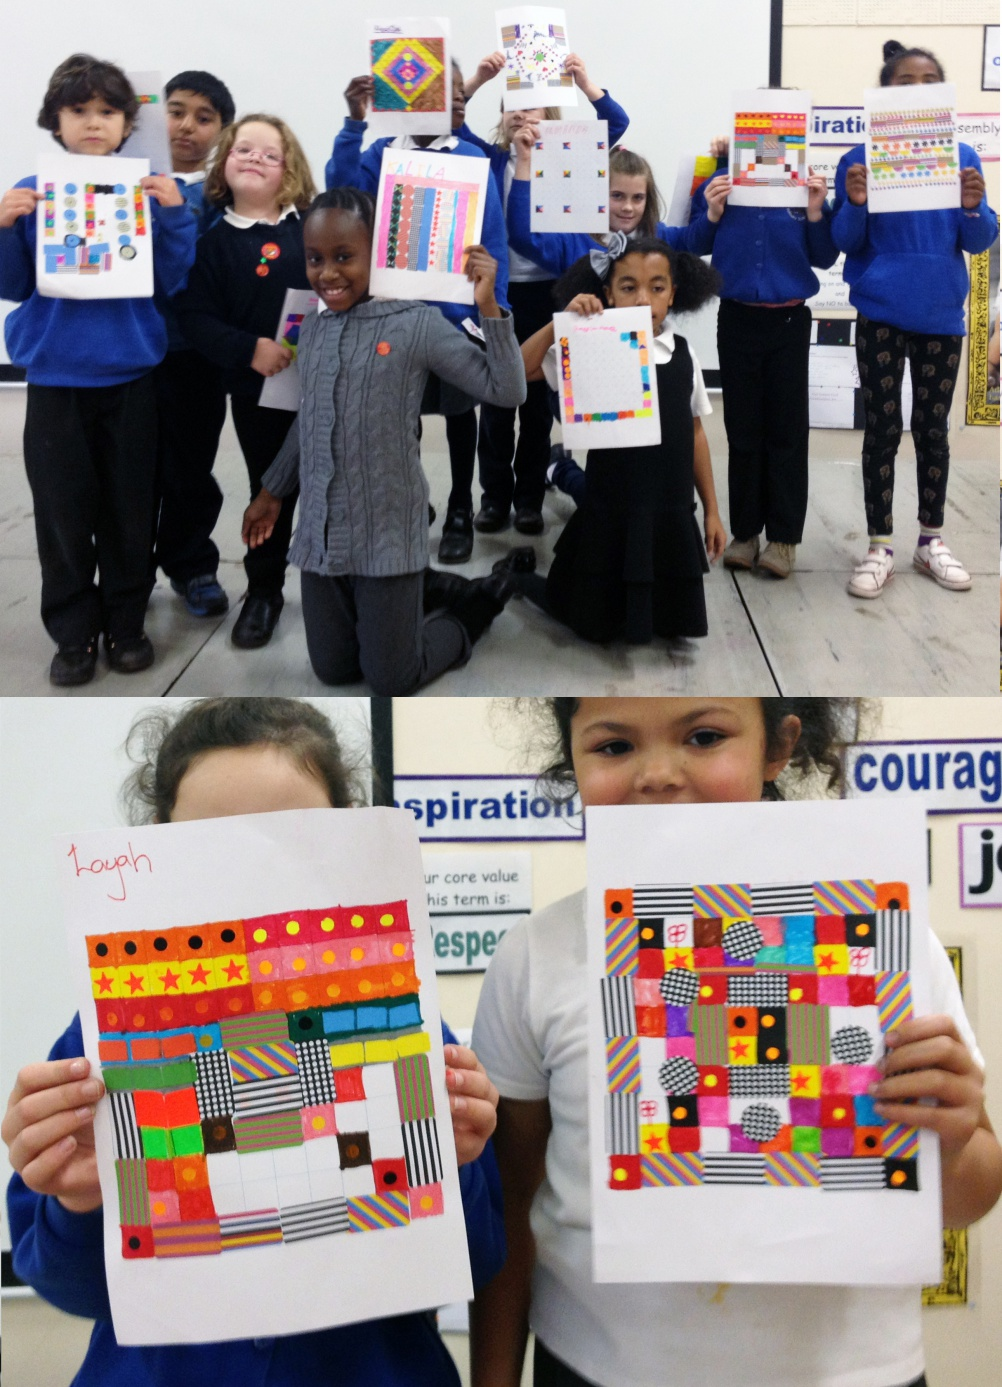 Children of Glenfrome Primary School, Eastville, showcasing their patterns for the Wonder Pavilion